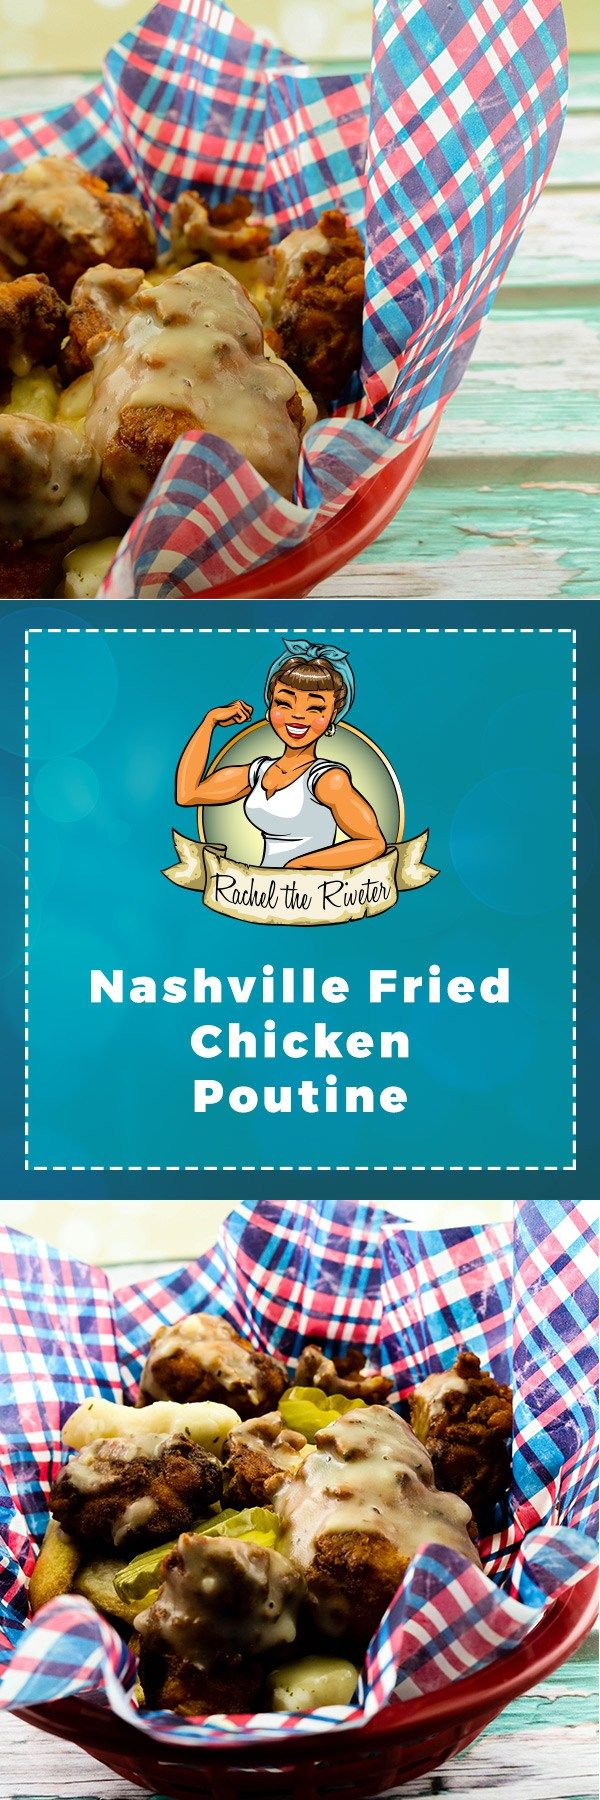 Nashville Fried Chicken Poutine - Spicy cheesy goodness smothered in delicious chicken ranch gravy